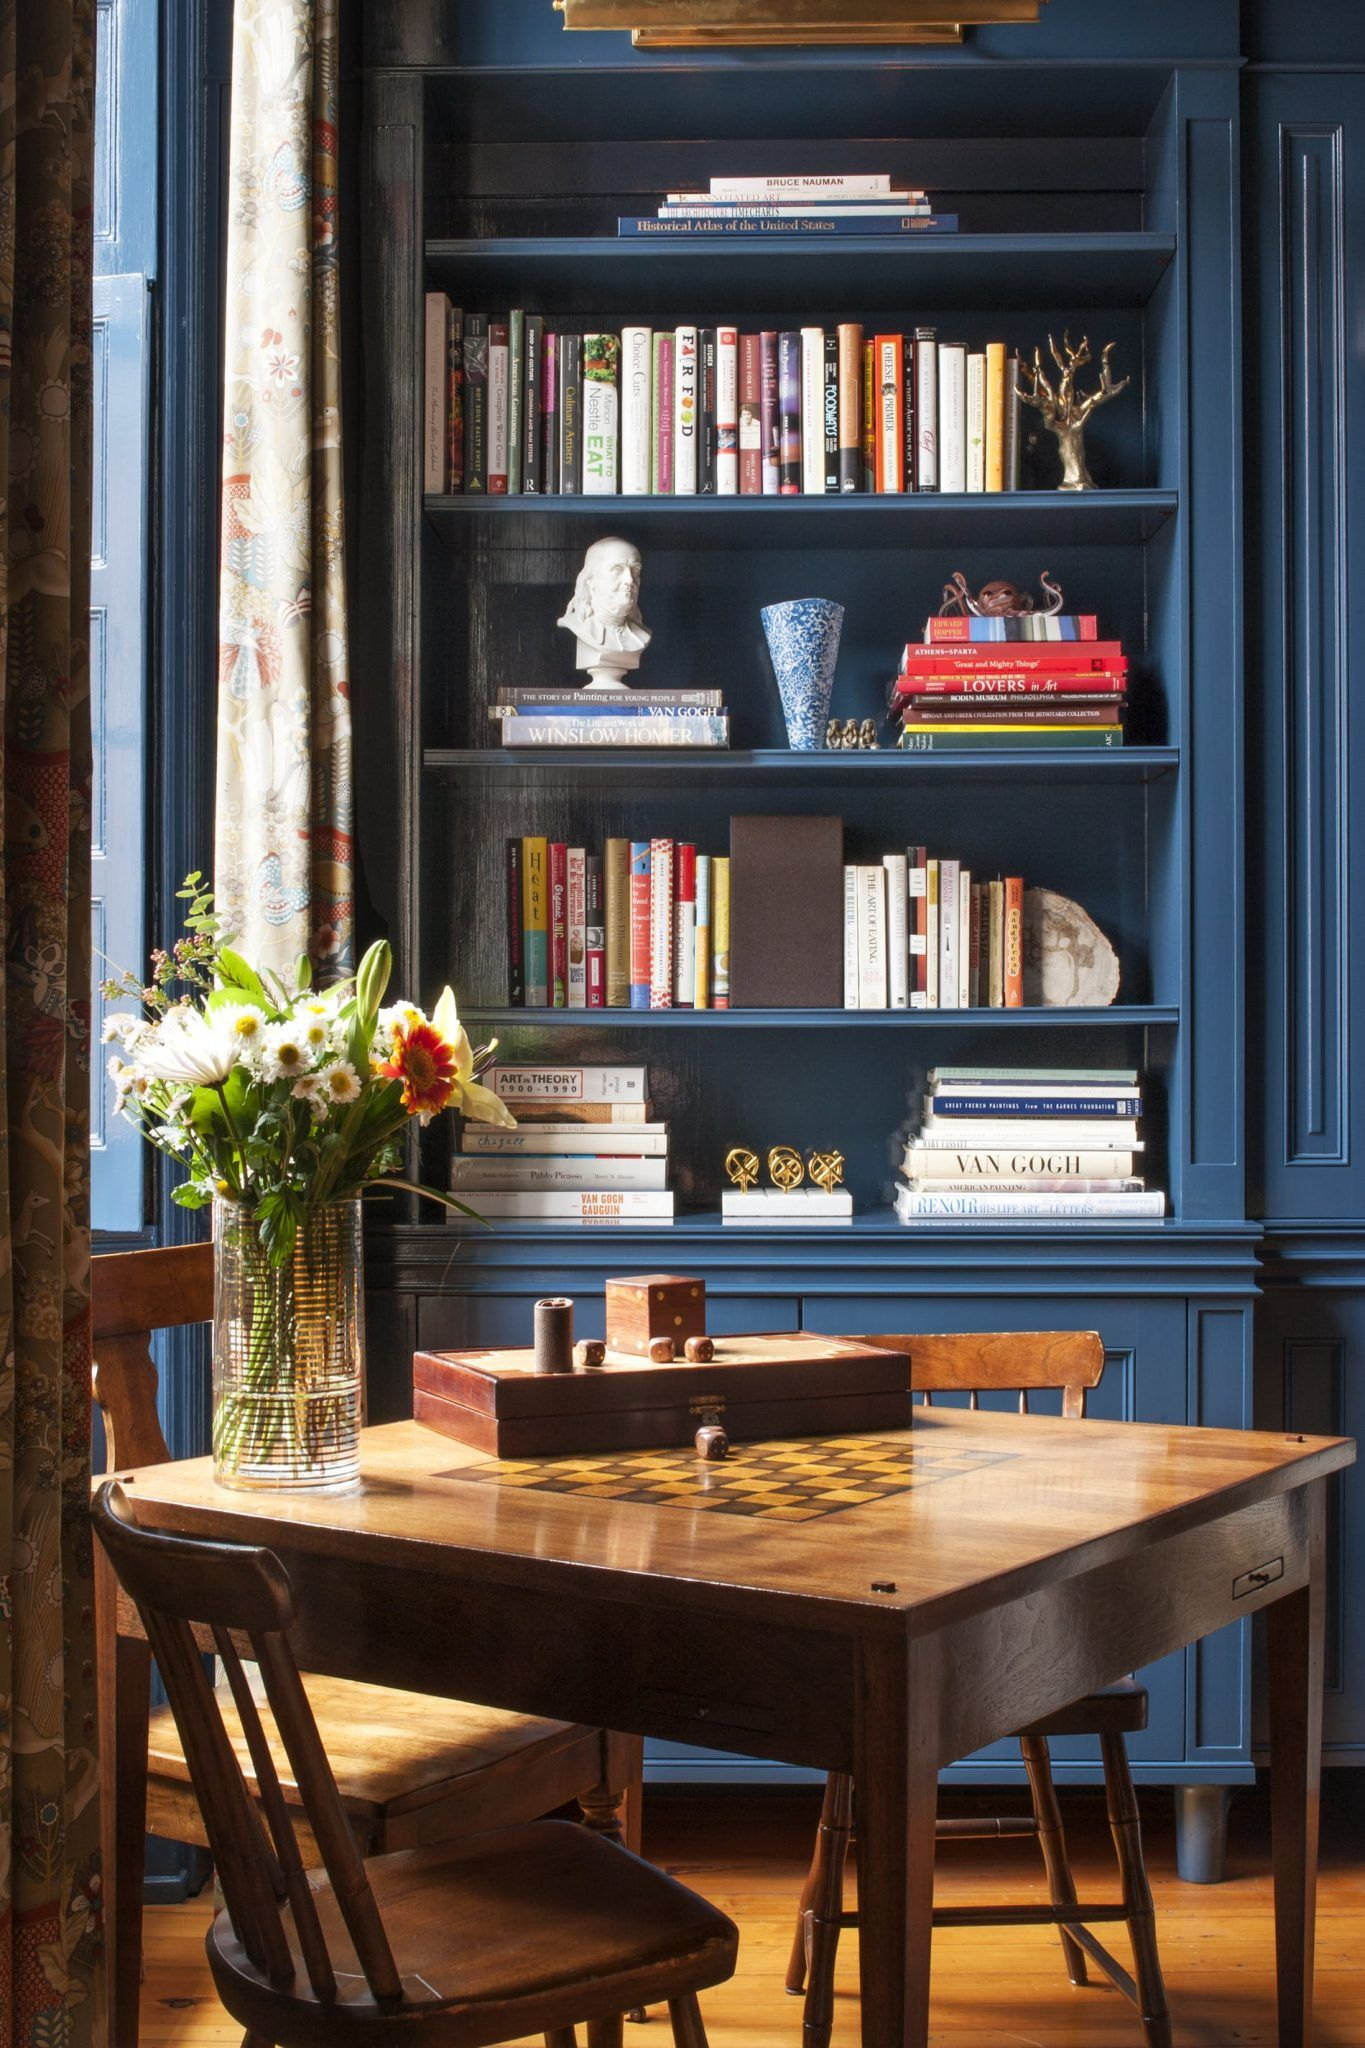 Pantone Color Of The Year 2020 Classic Blue In Interior Design